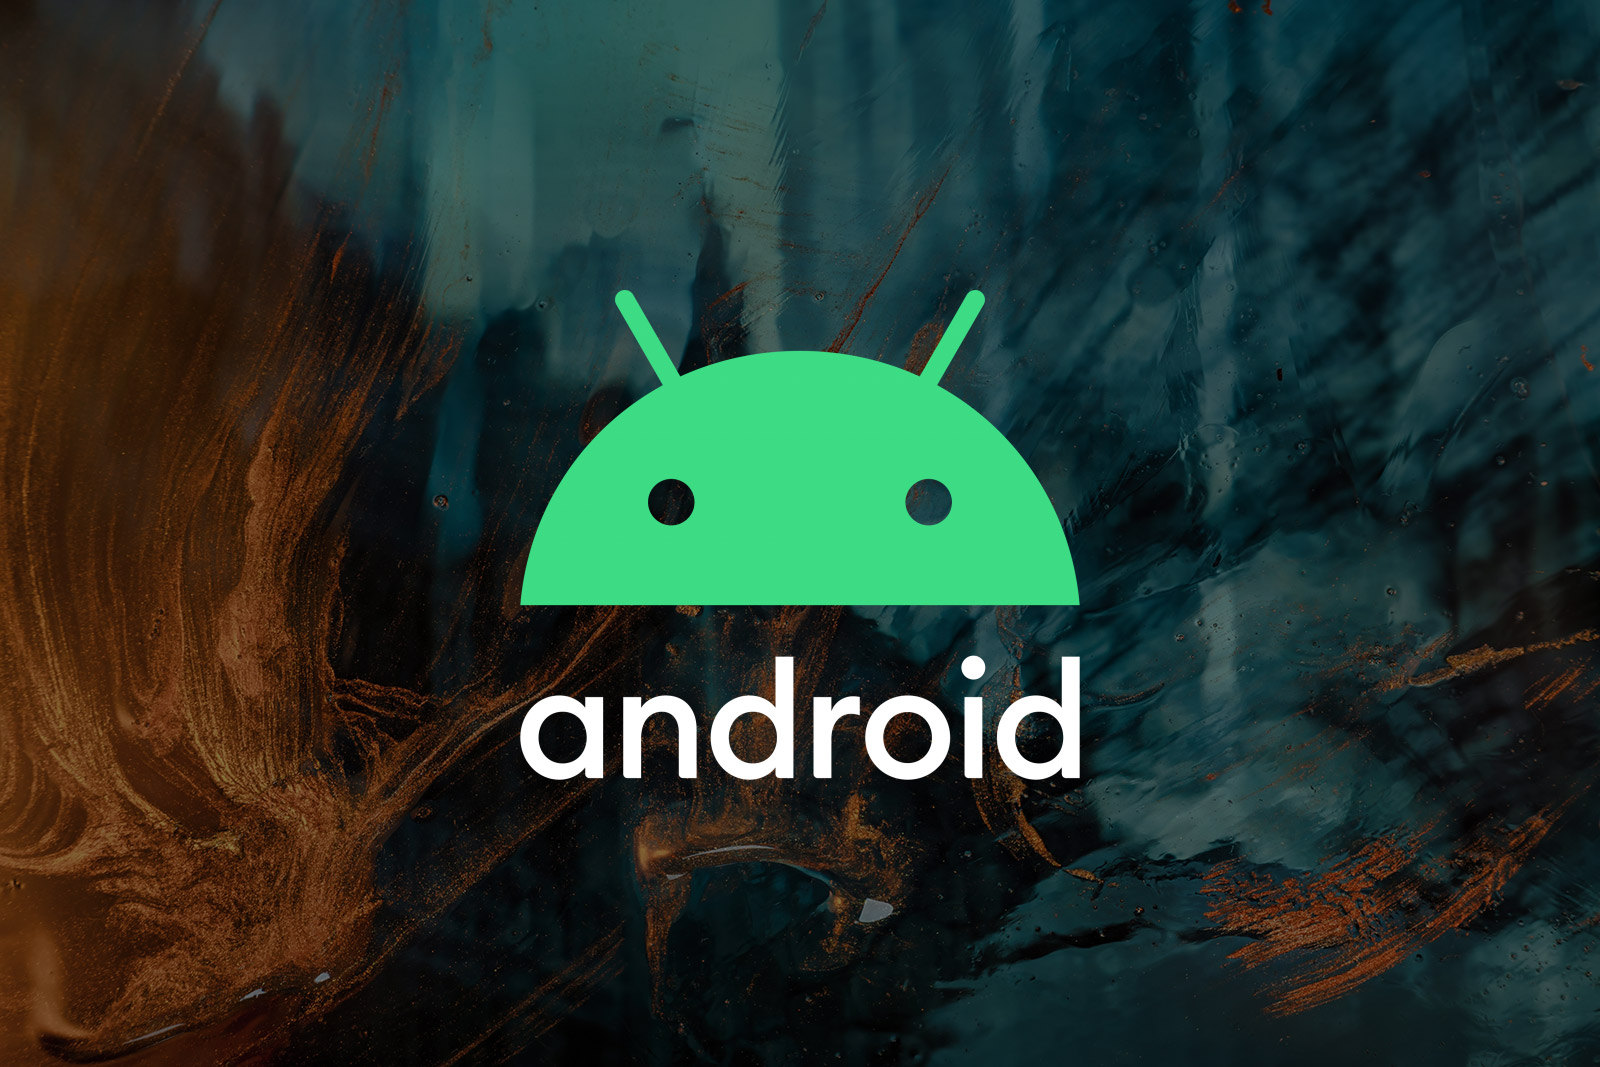 Android data sharing remains significant, no opt-out available to users